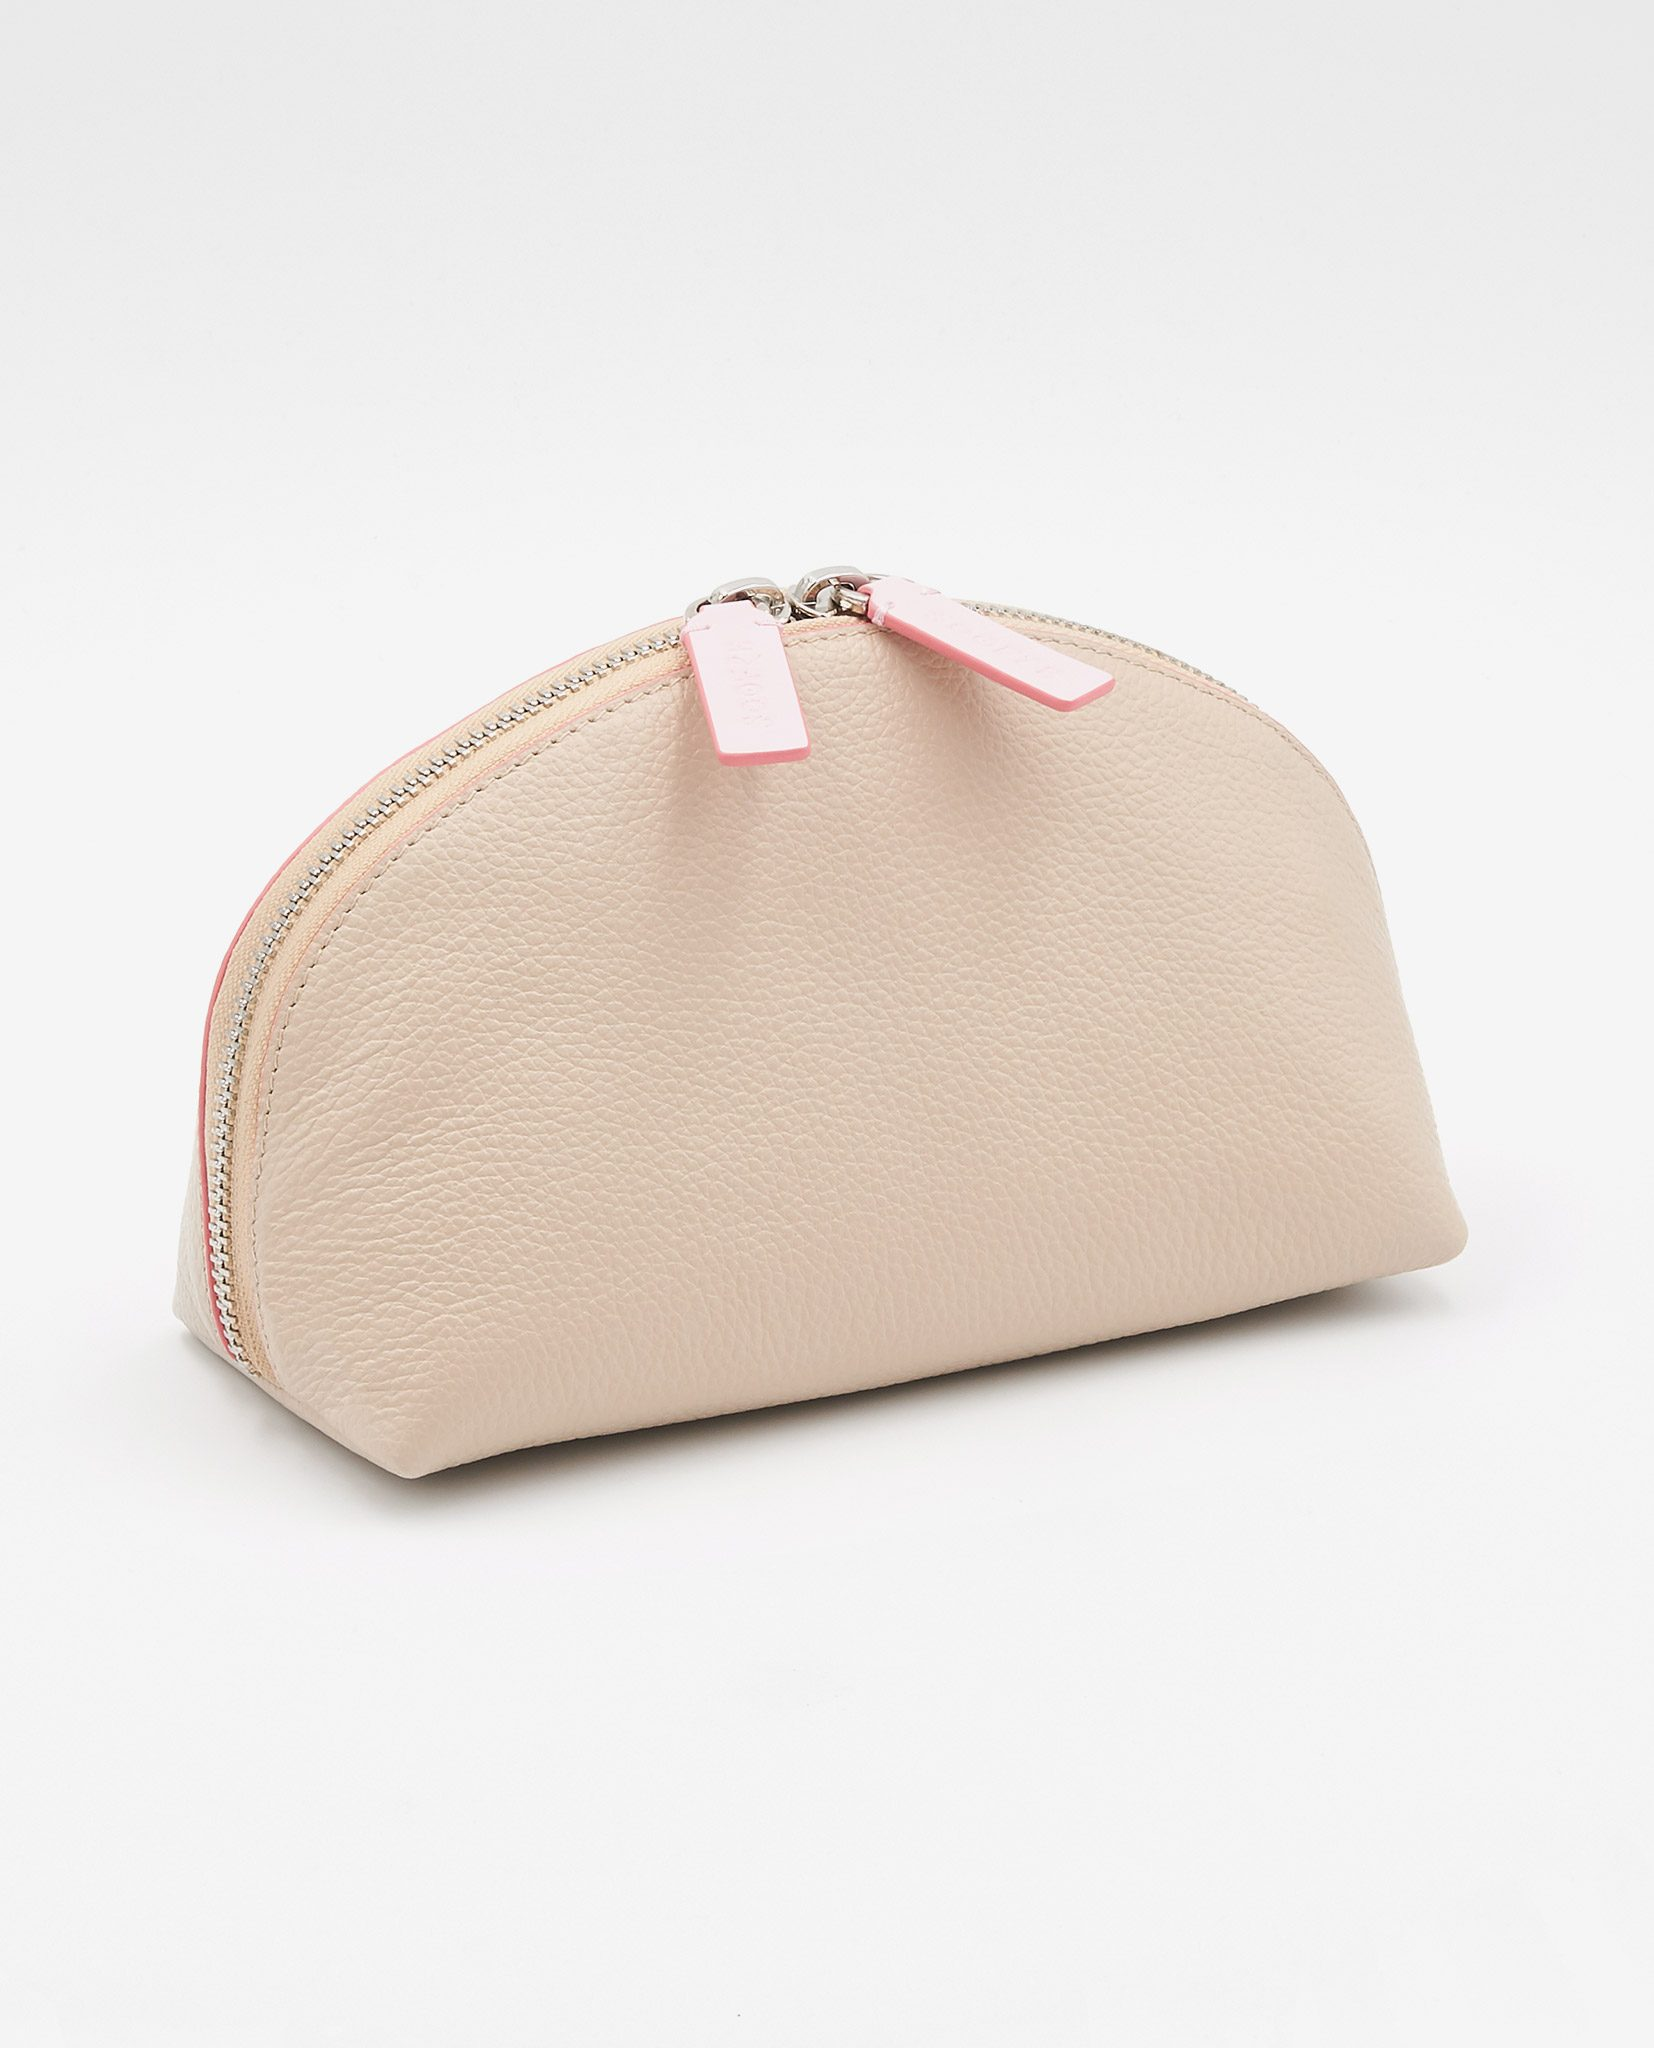 Soofre Grainy Leather Cosmetic Bag Cream Pale Pink